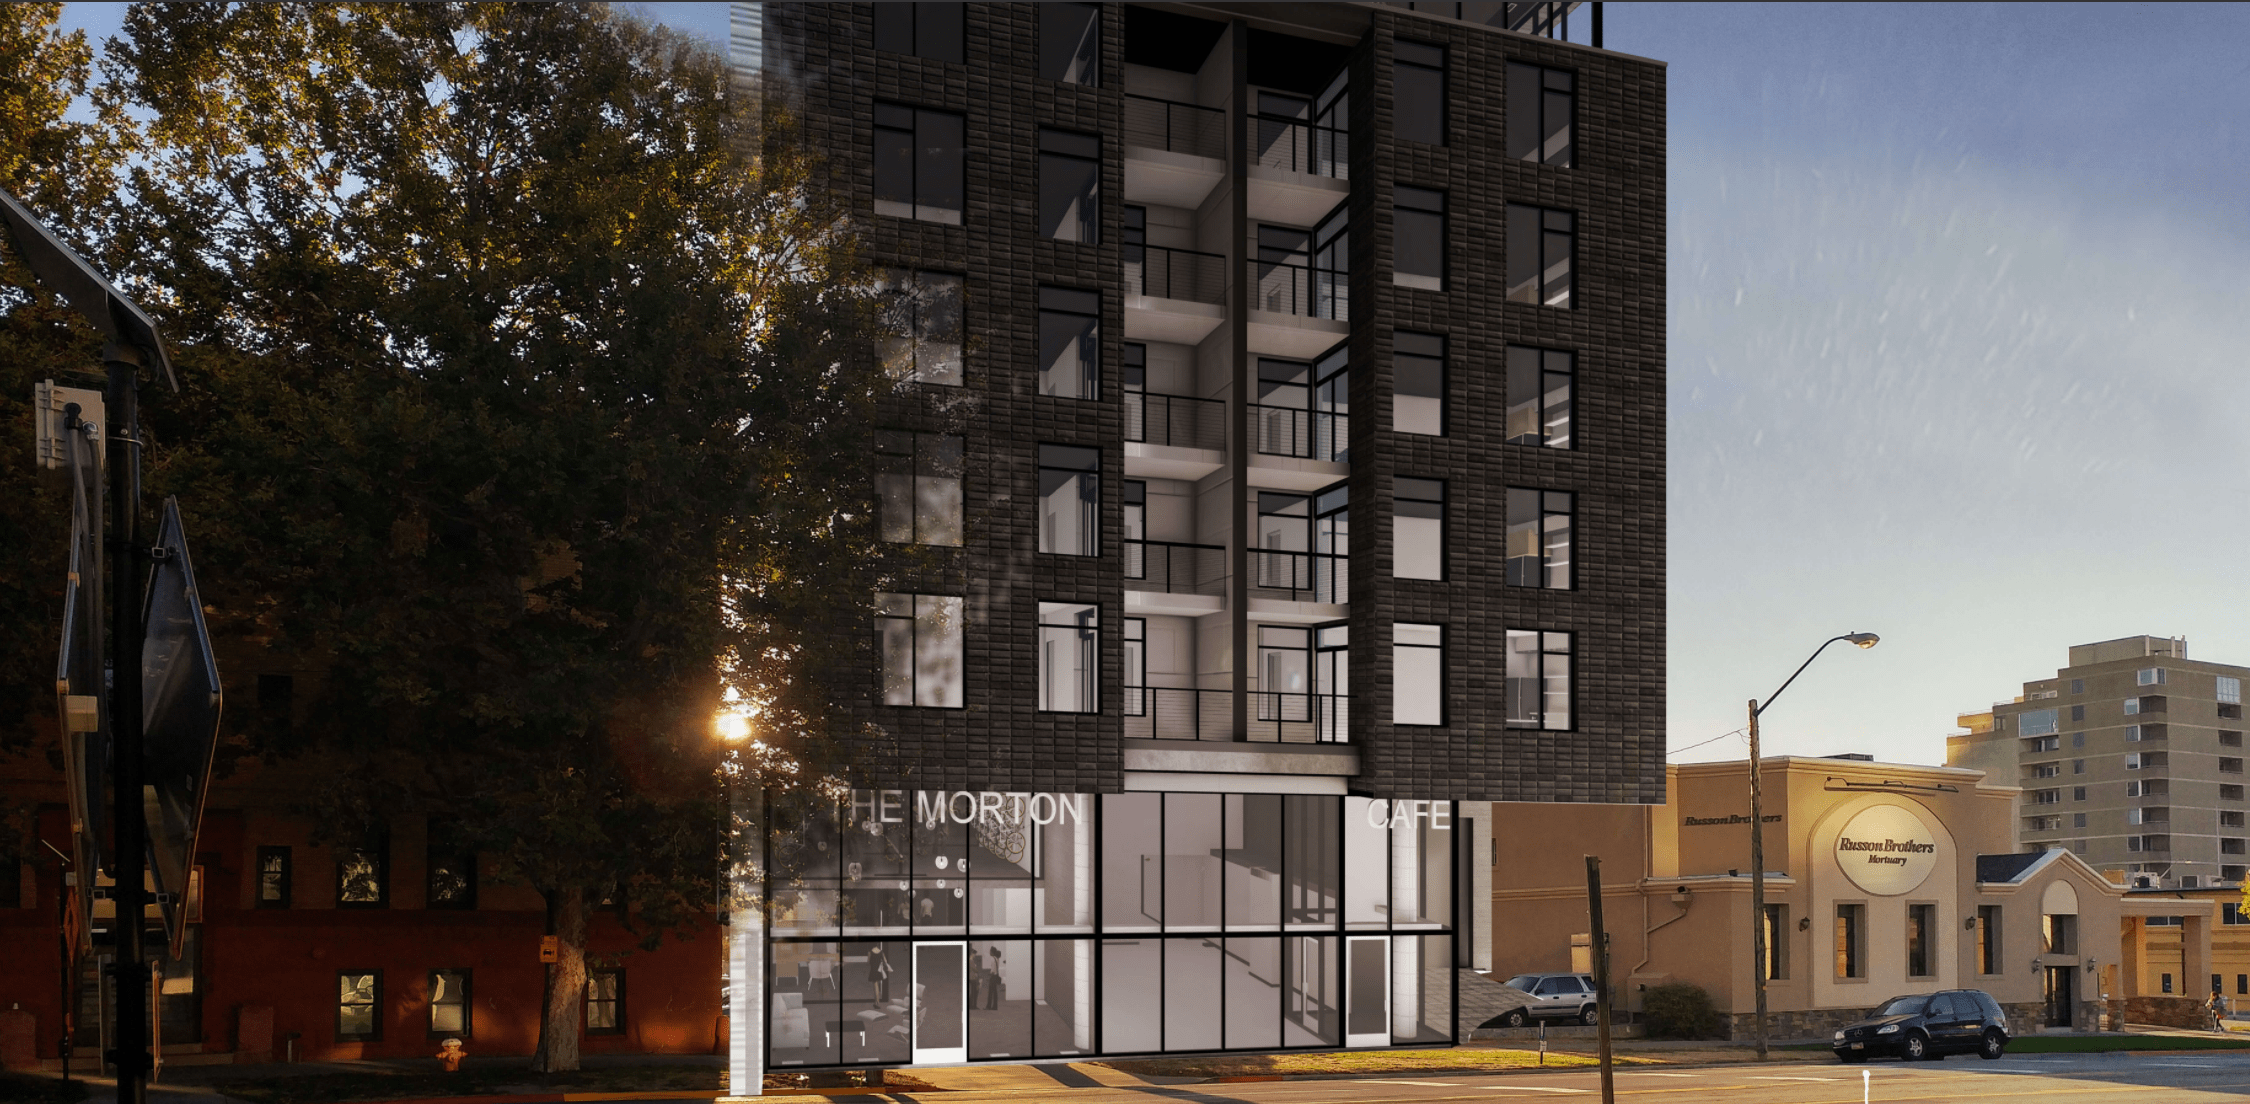 Rendering Of The Morton. Image Courtesy AJC Architects.